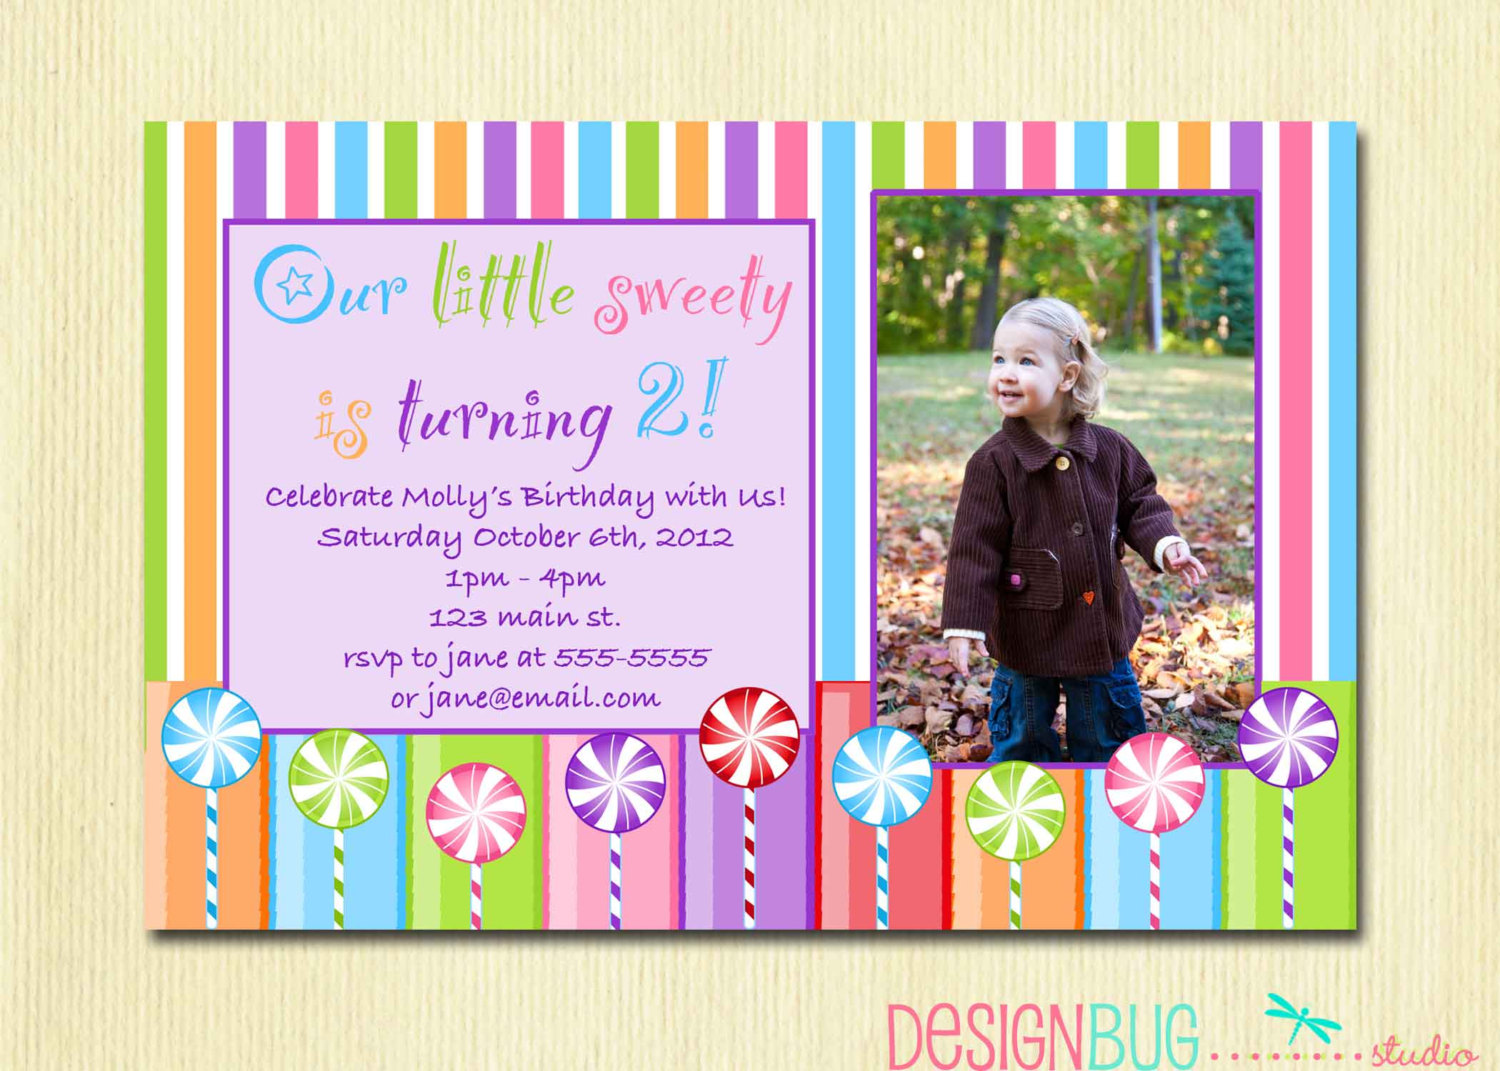 4 year old birthday invitation sayings ; birthday_invitation_wording_example_5_year_old_4